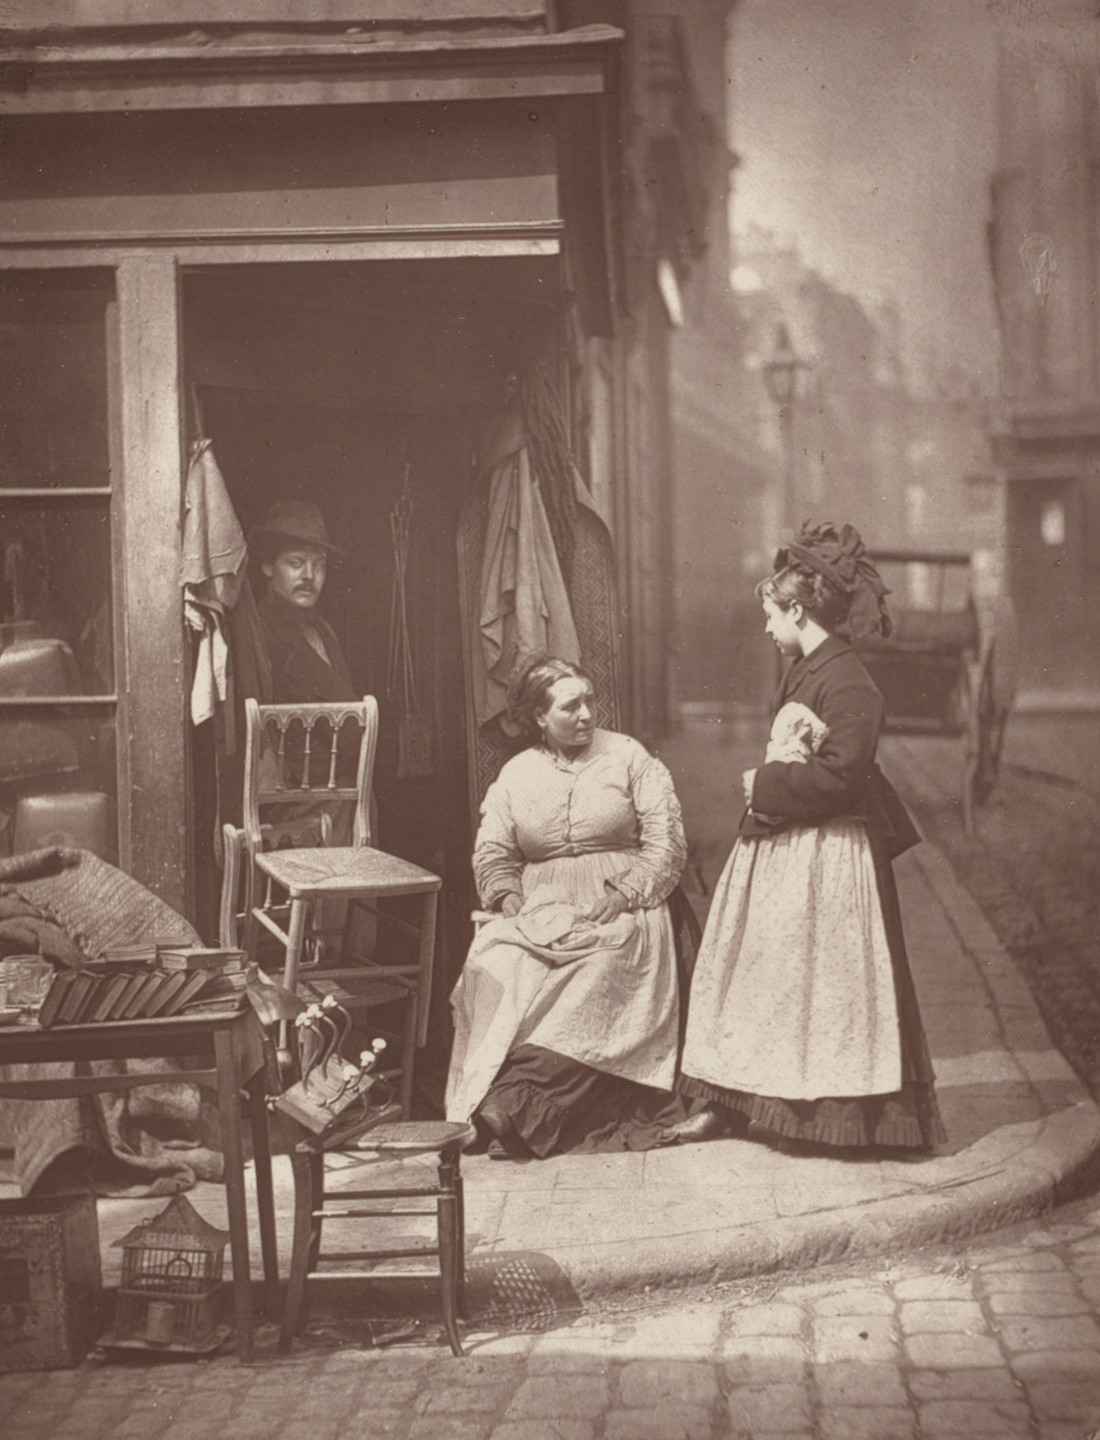 John Thomson. Old Furniture from the album Street Life in London. 1877